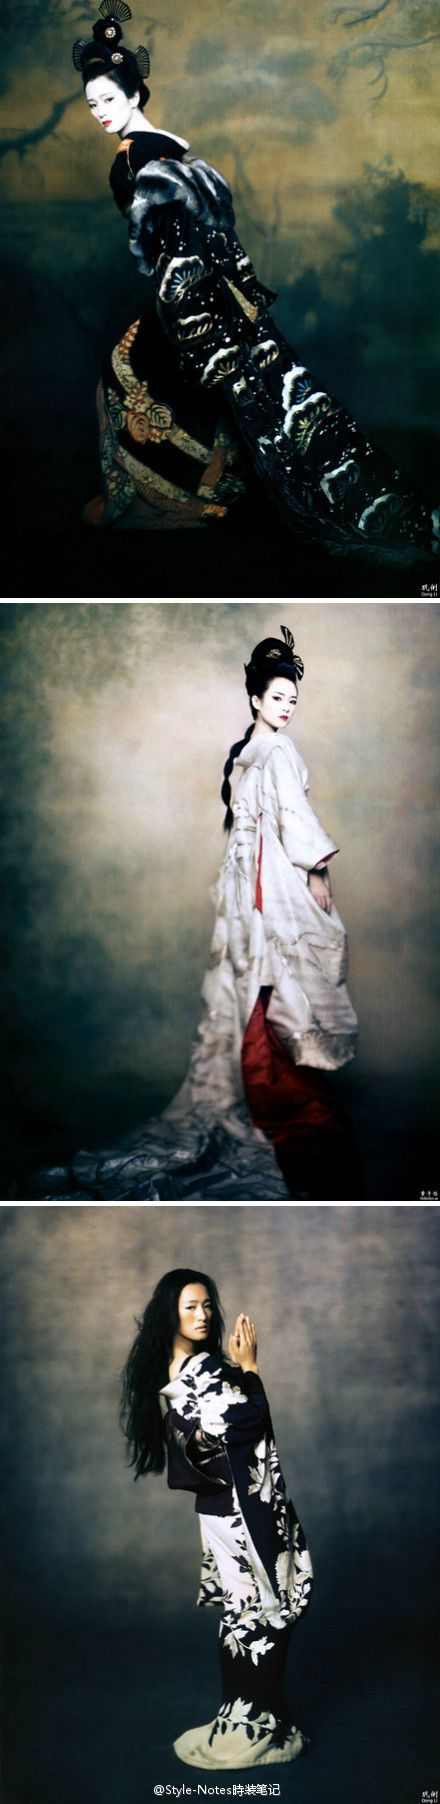 Gong Li & Ziyi Zhang for Memoirs of a Geisha